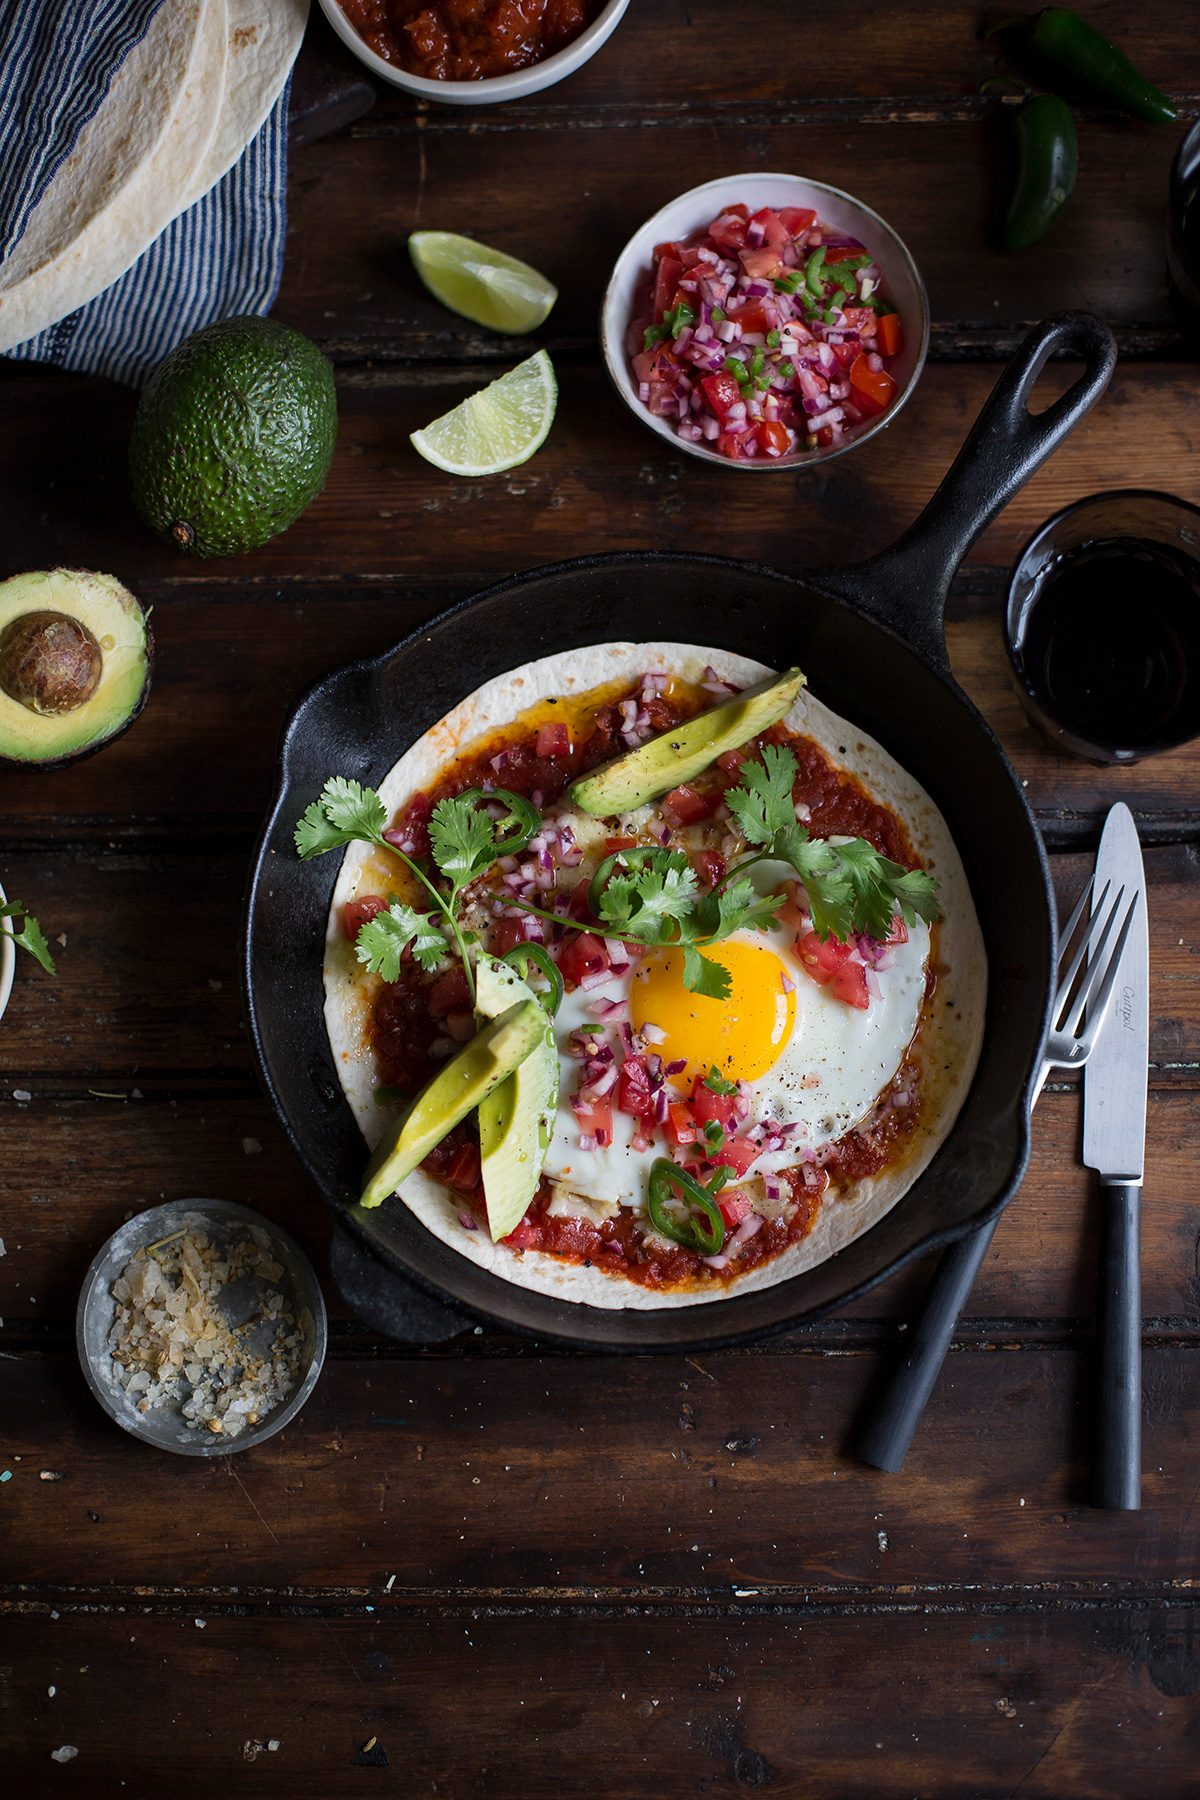 A recipe for Huevos rancheros with chipotle